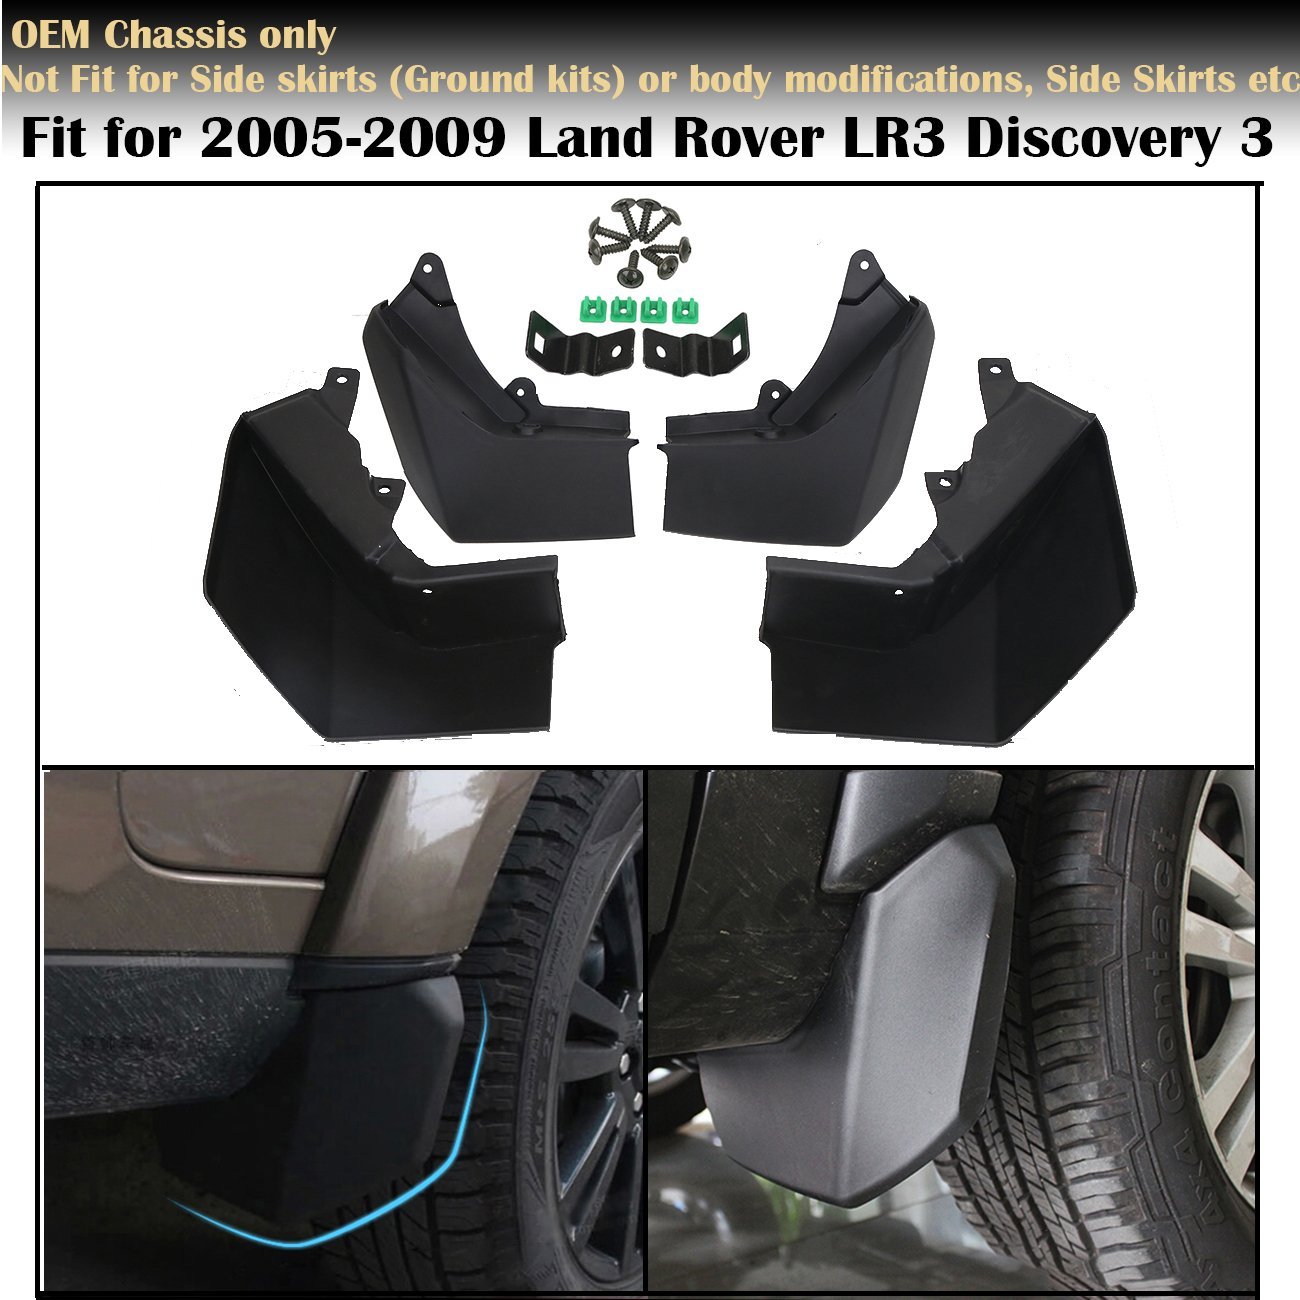 modellata paraspruzzi 4pcs anteriore posteriore parafango parafanghi Discovery 3 LR3, per 2005 - 2009 Discovery 3 LR3 Fit for 2005-2009 Land Rover LR3 Discovery 3 OEM Chassis only Not Compatible with Side skirts (Ground kits) or body modifications